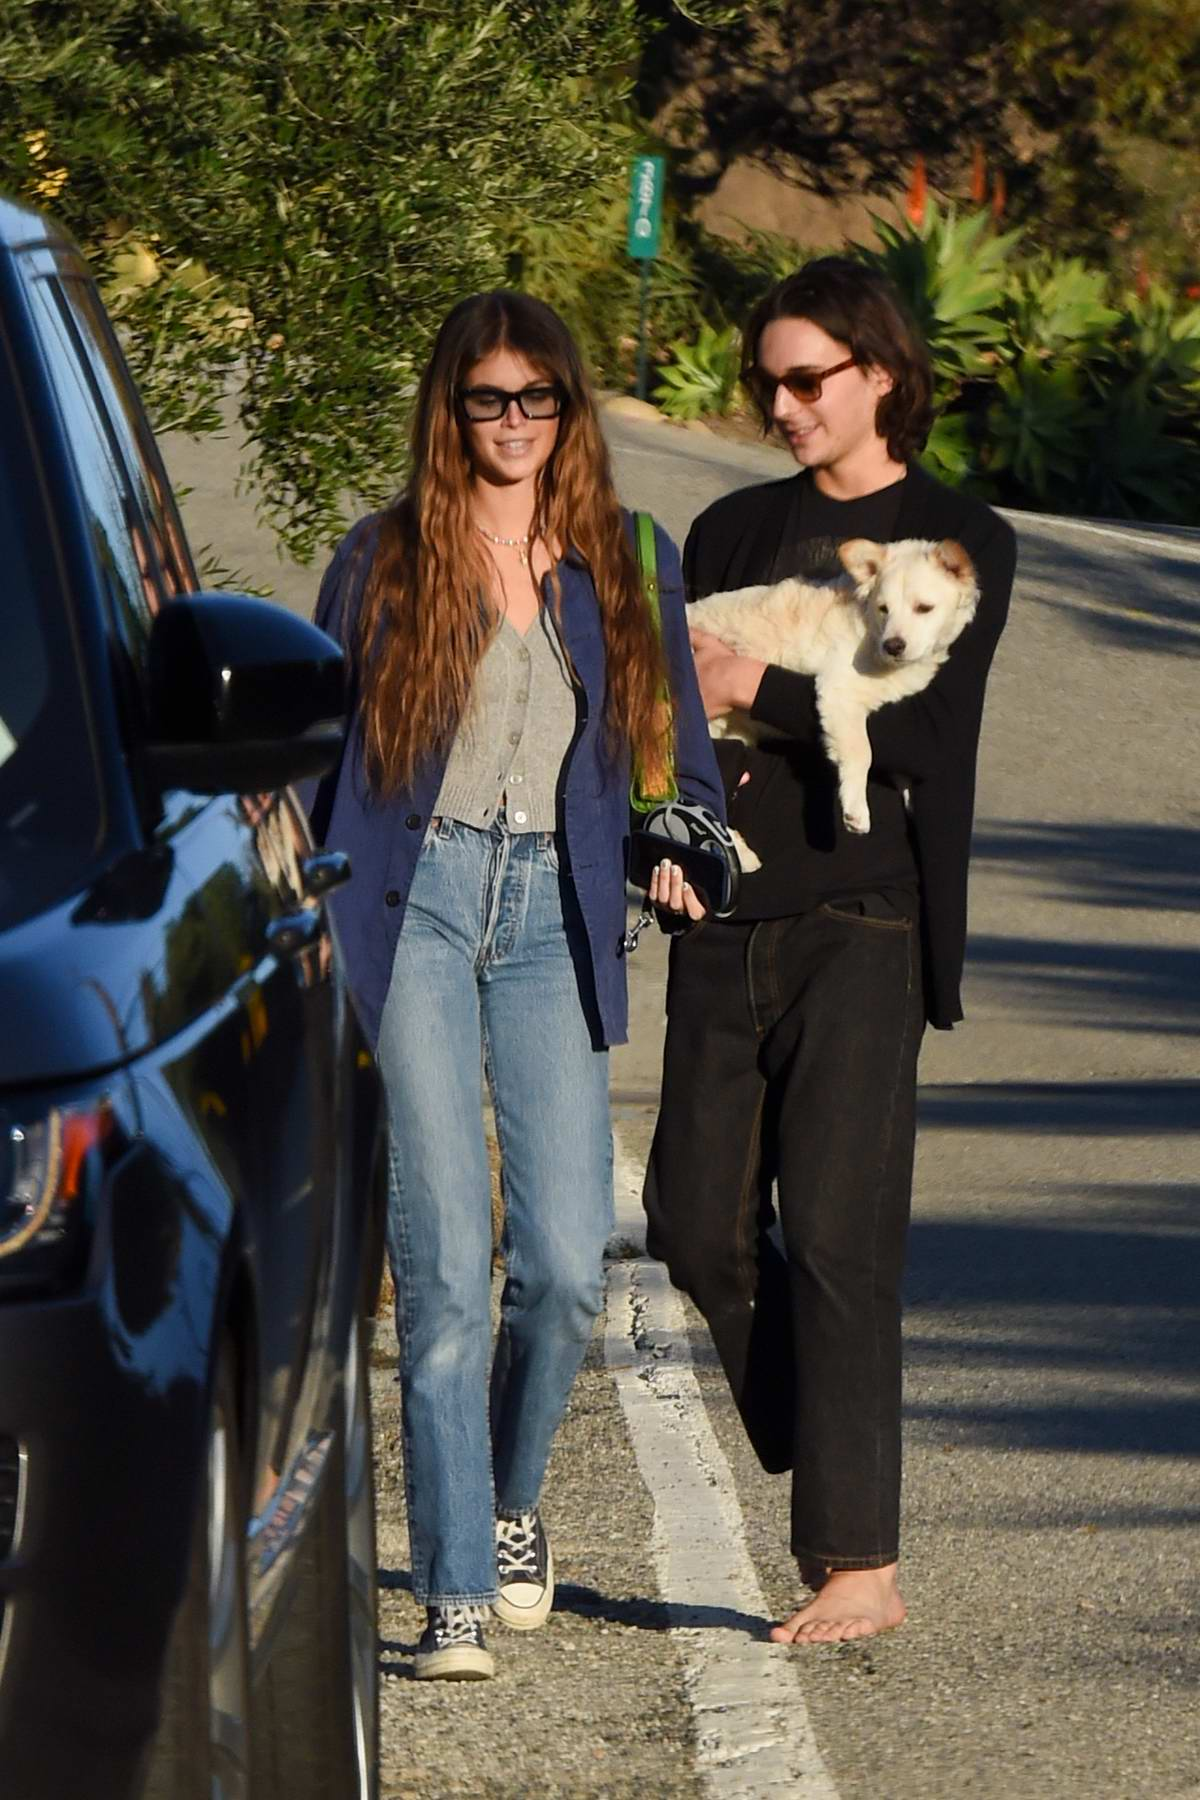 Kaia Gerber enjoys a leisurely stroll with a friend and her pup in Malibu, California